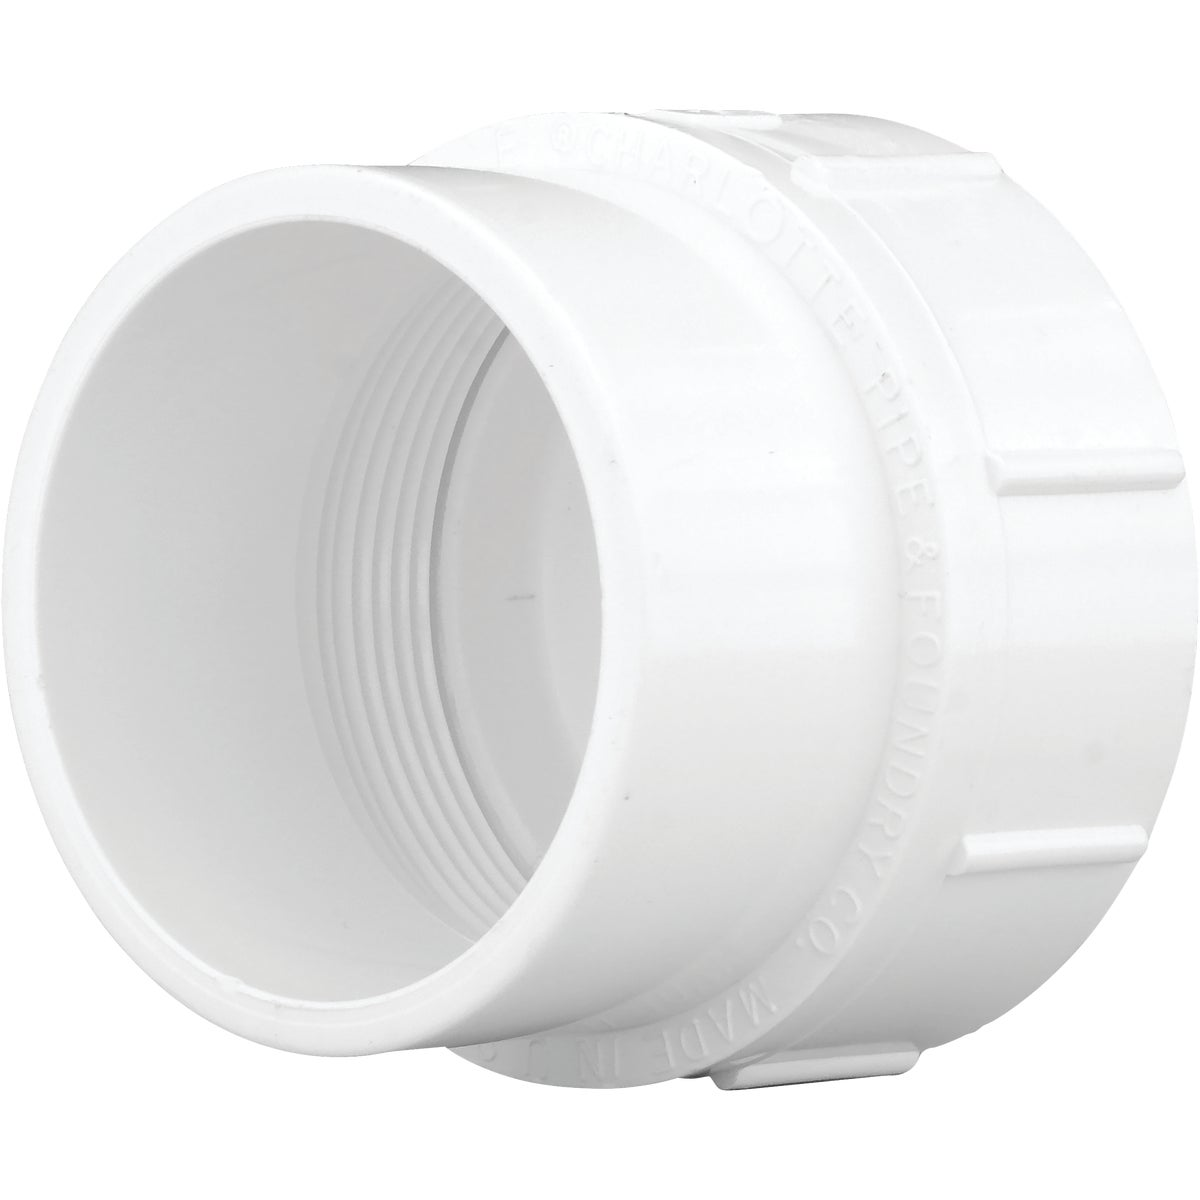 "3""PVC-DWV FITTING W/PLUG - 71630 by Genova Inc  Pvc Dwv"